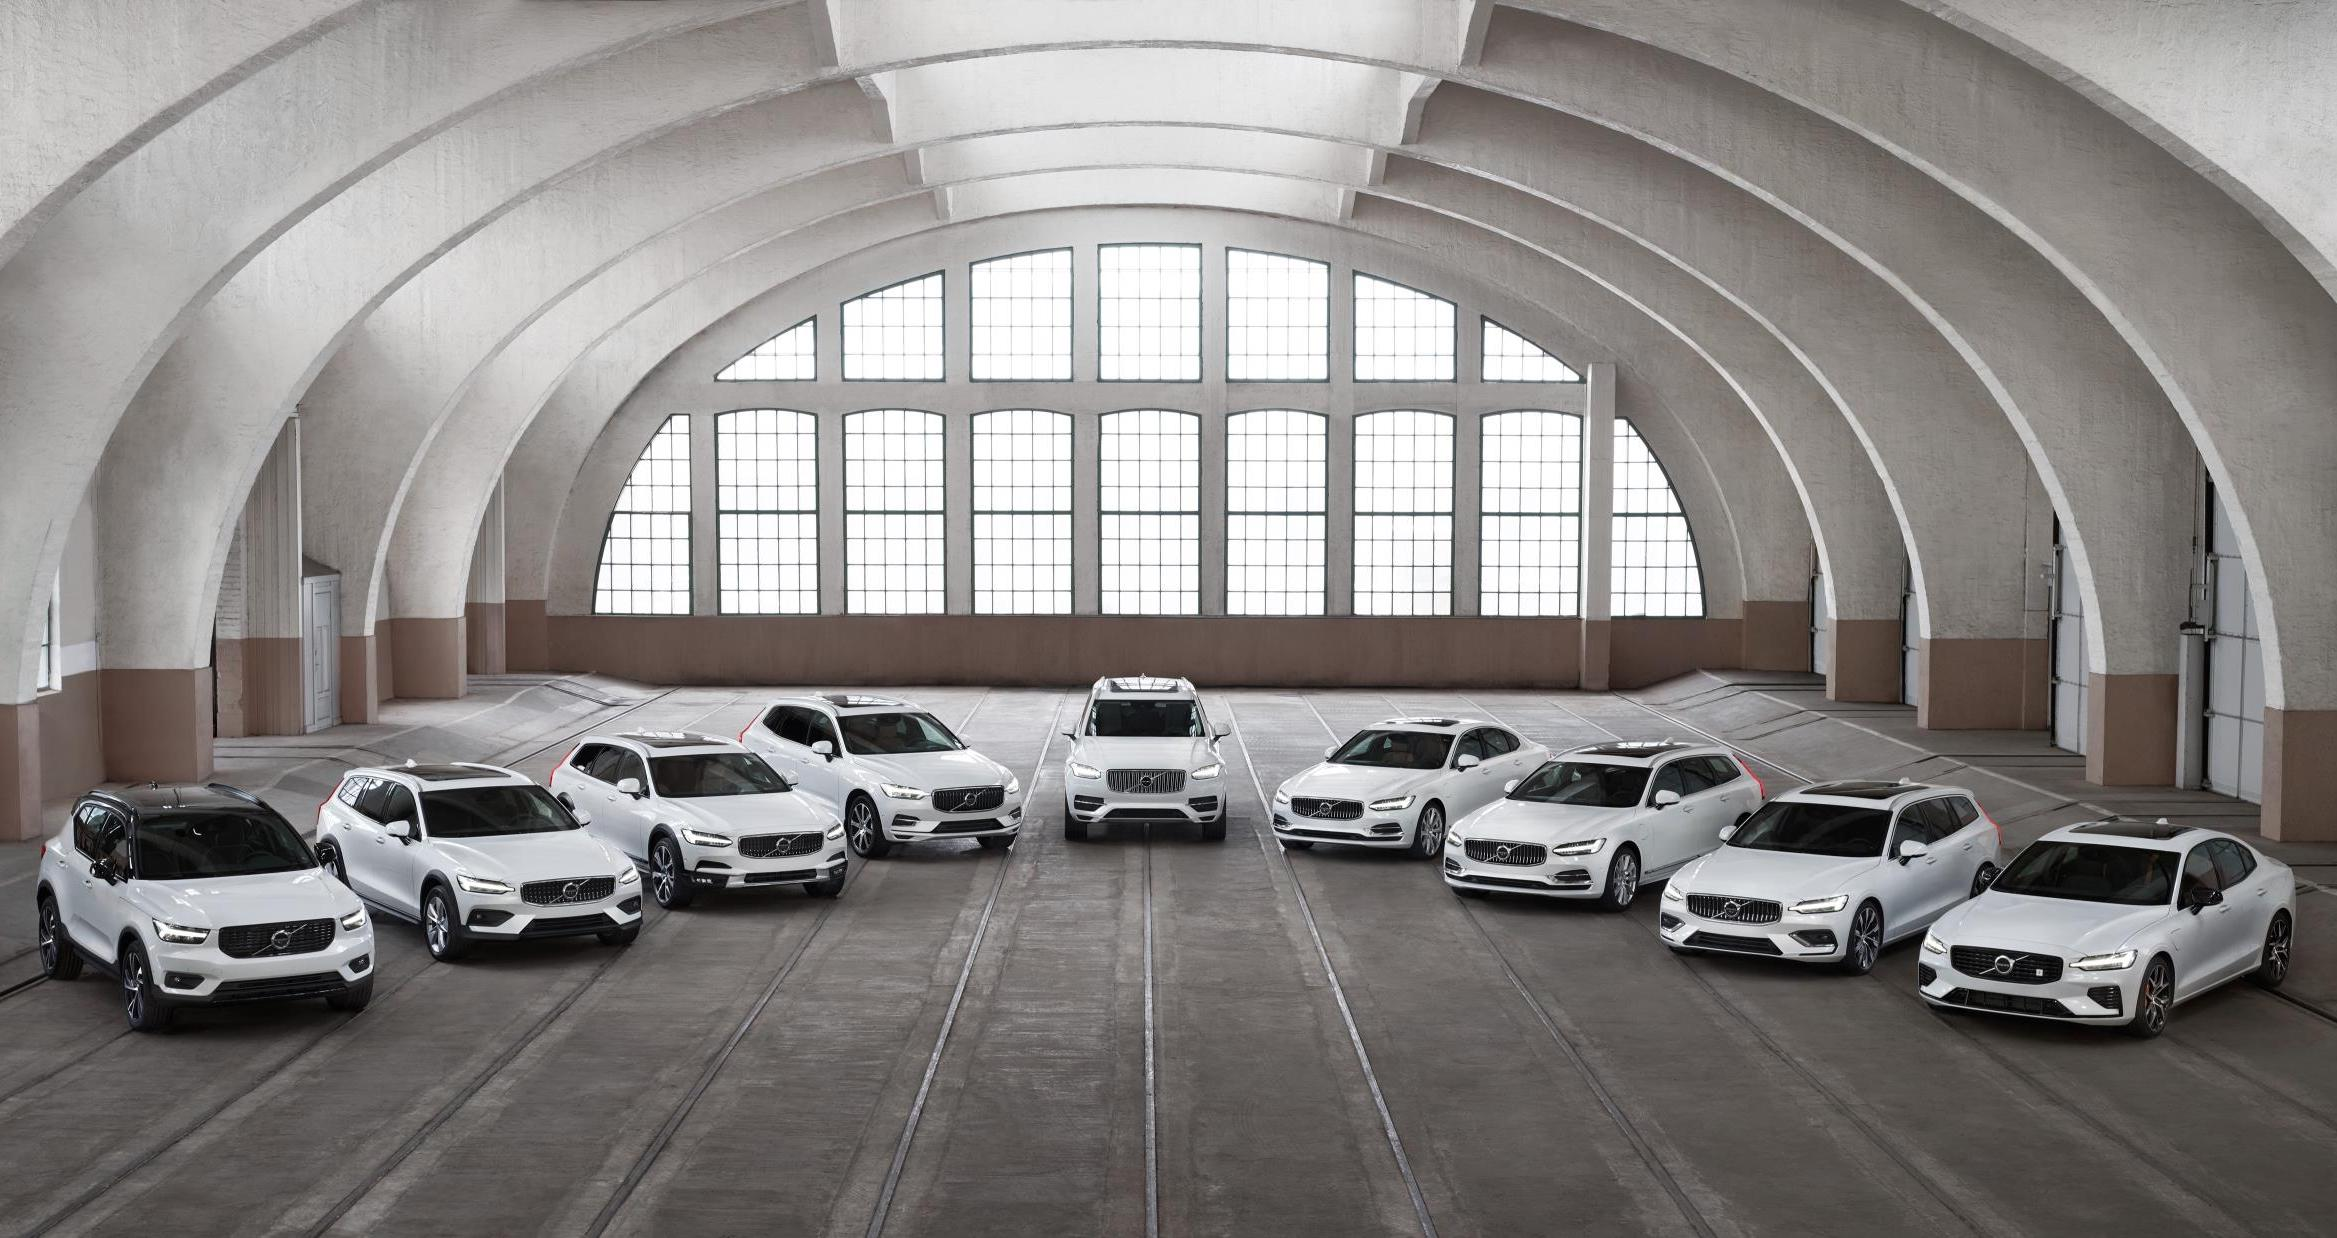 Volvo sets record global sales in 2018, up 12.4%